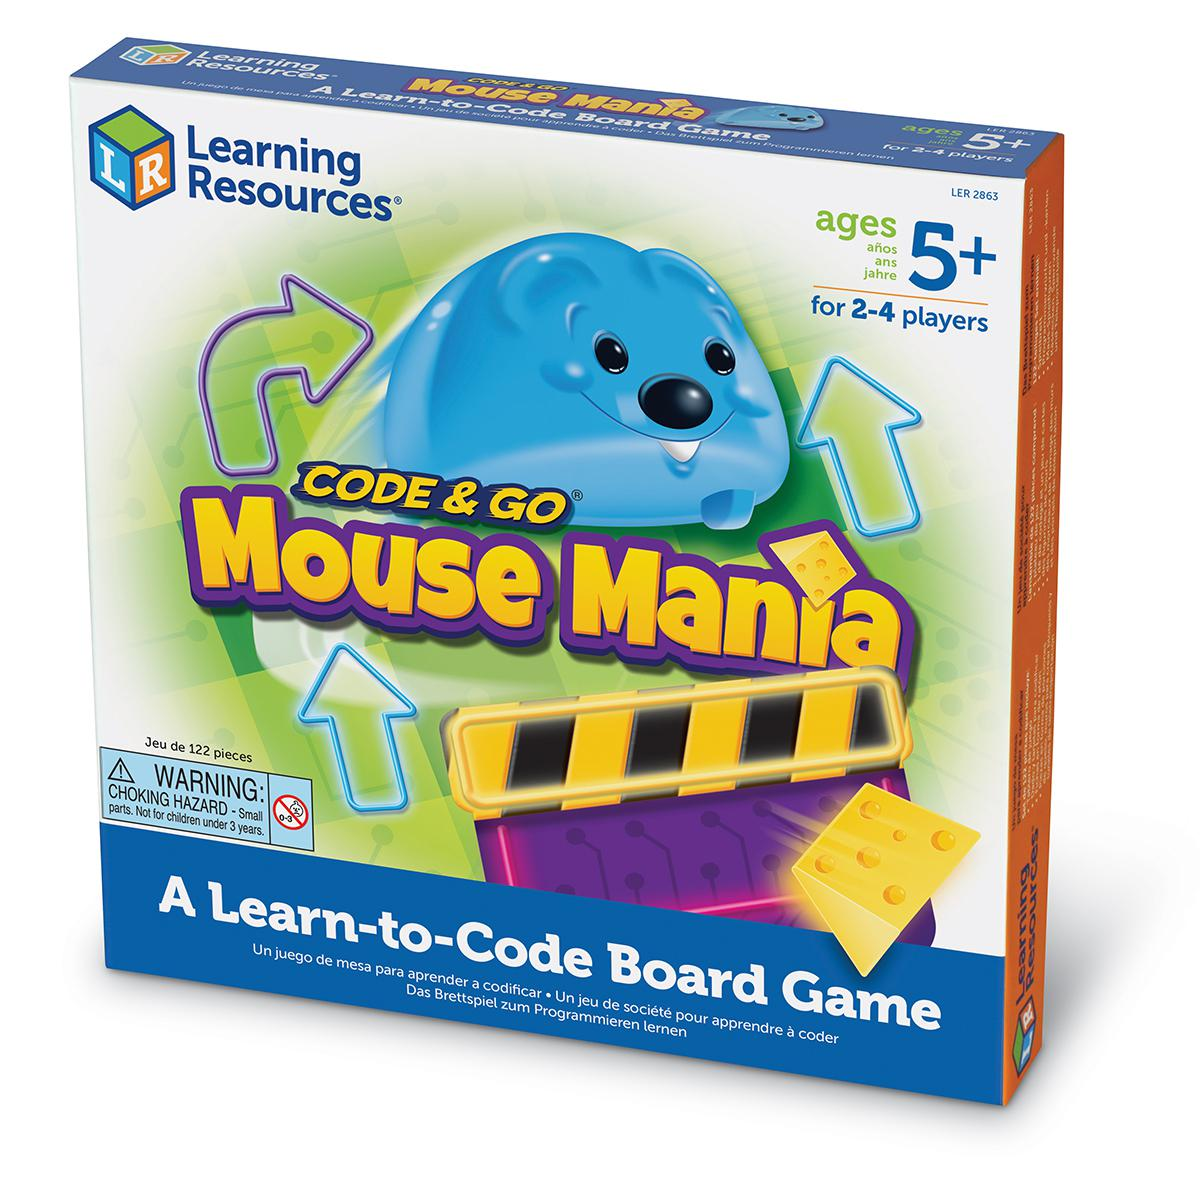 Code & Go® Mouse Mania: A Learn-to-Code Board Game